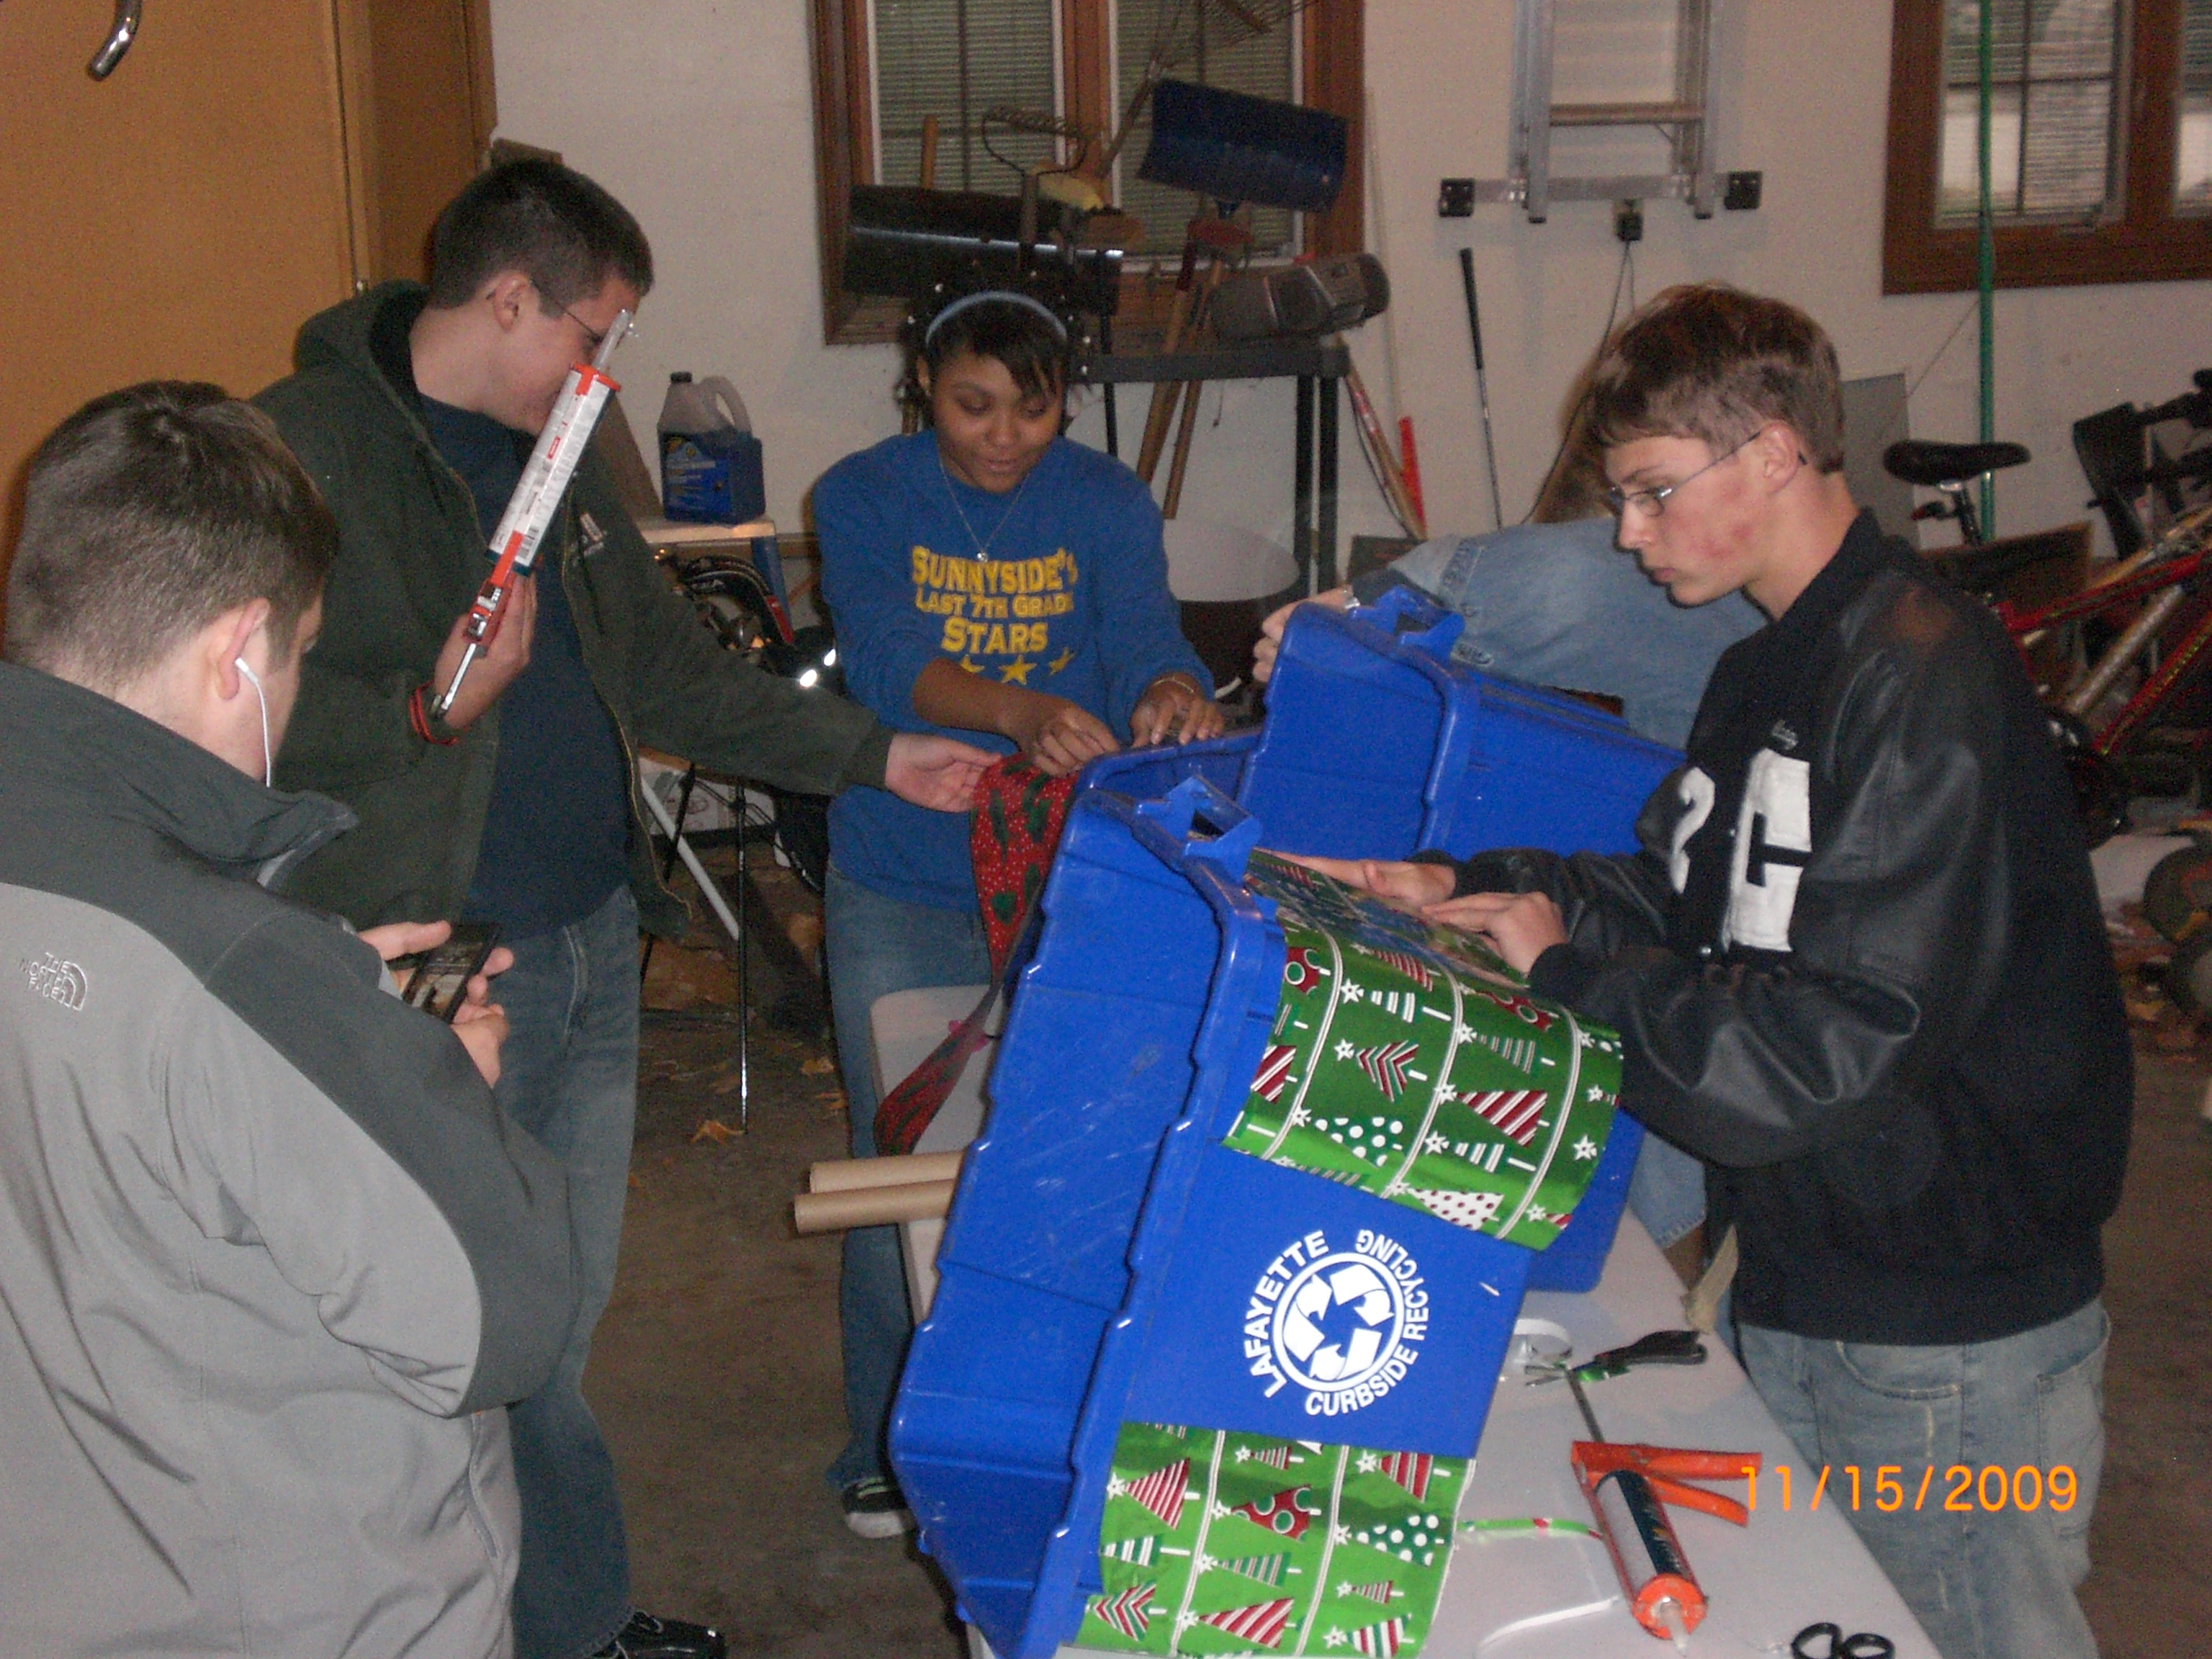 Teenagers preparing for the parade by decorating recycling bins